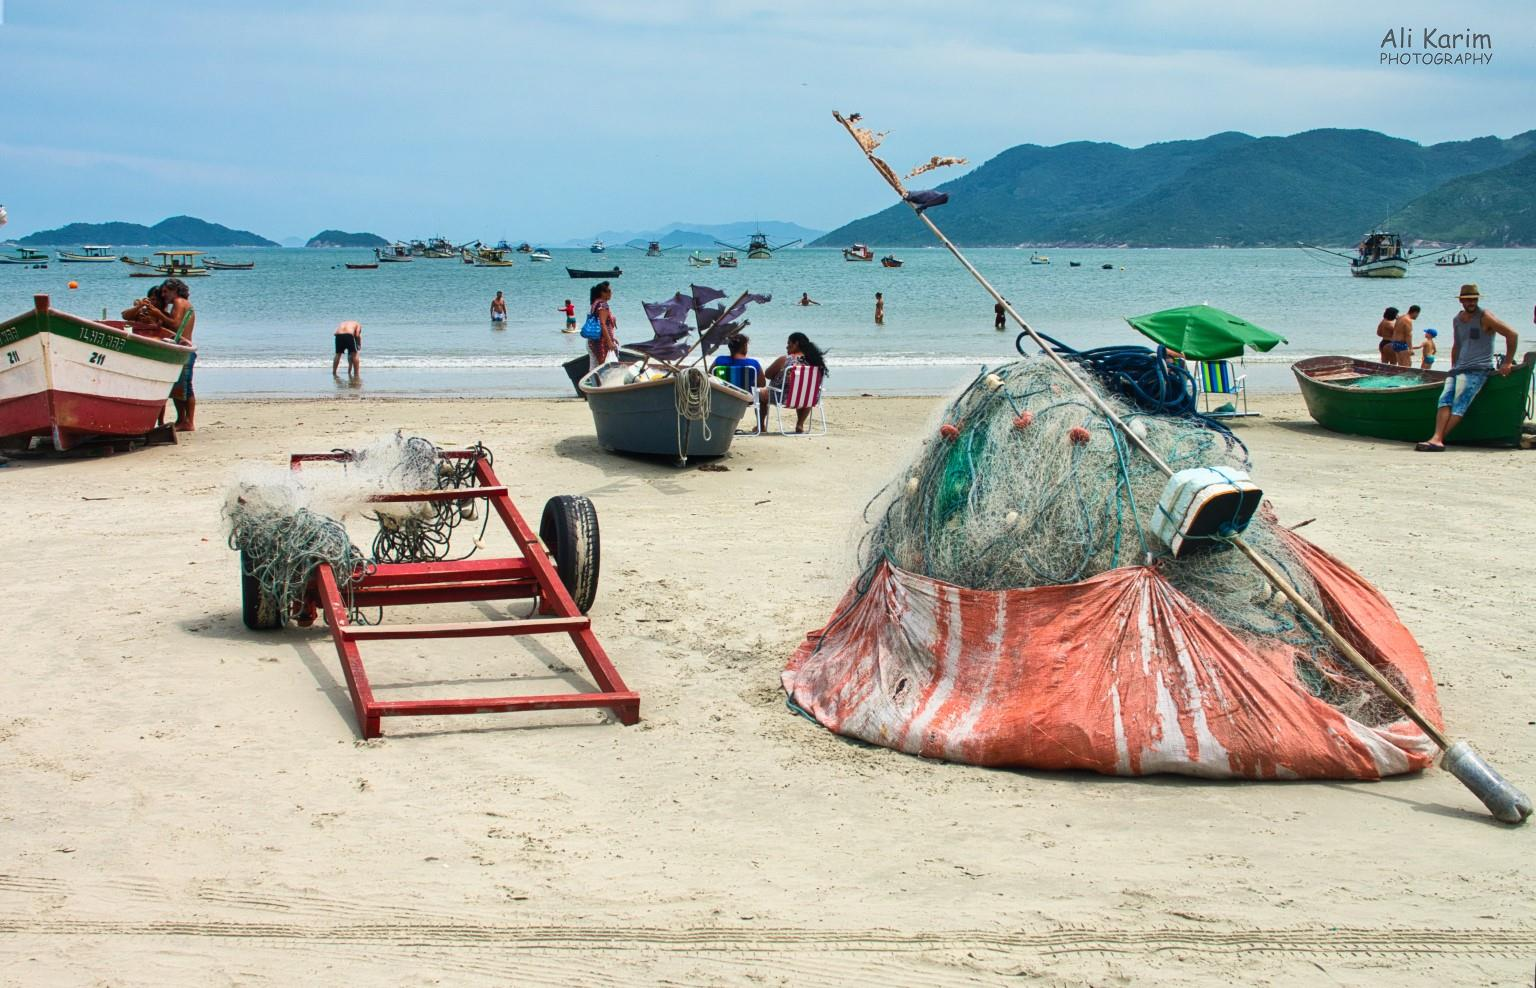 Florianópolis, Brazil Pantano do Sul local beach with lots of fishing boats